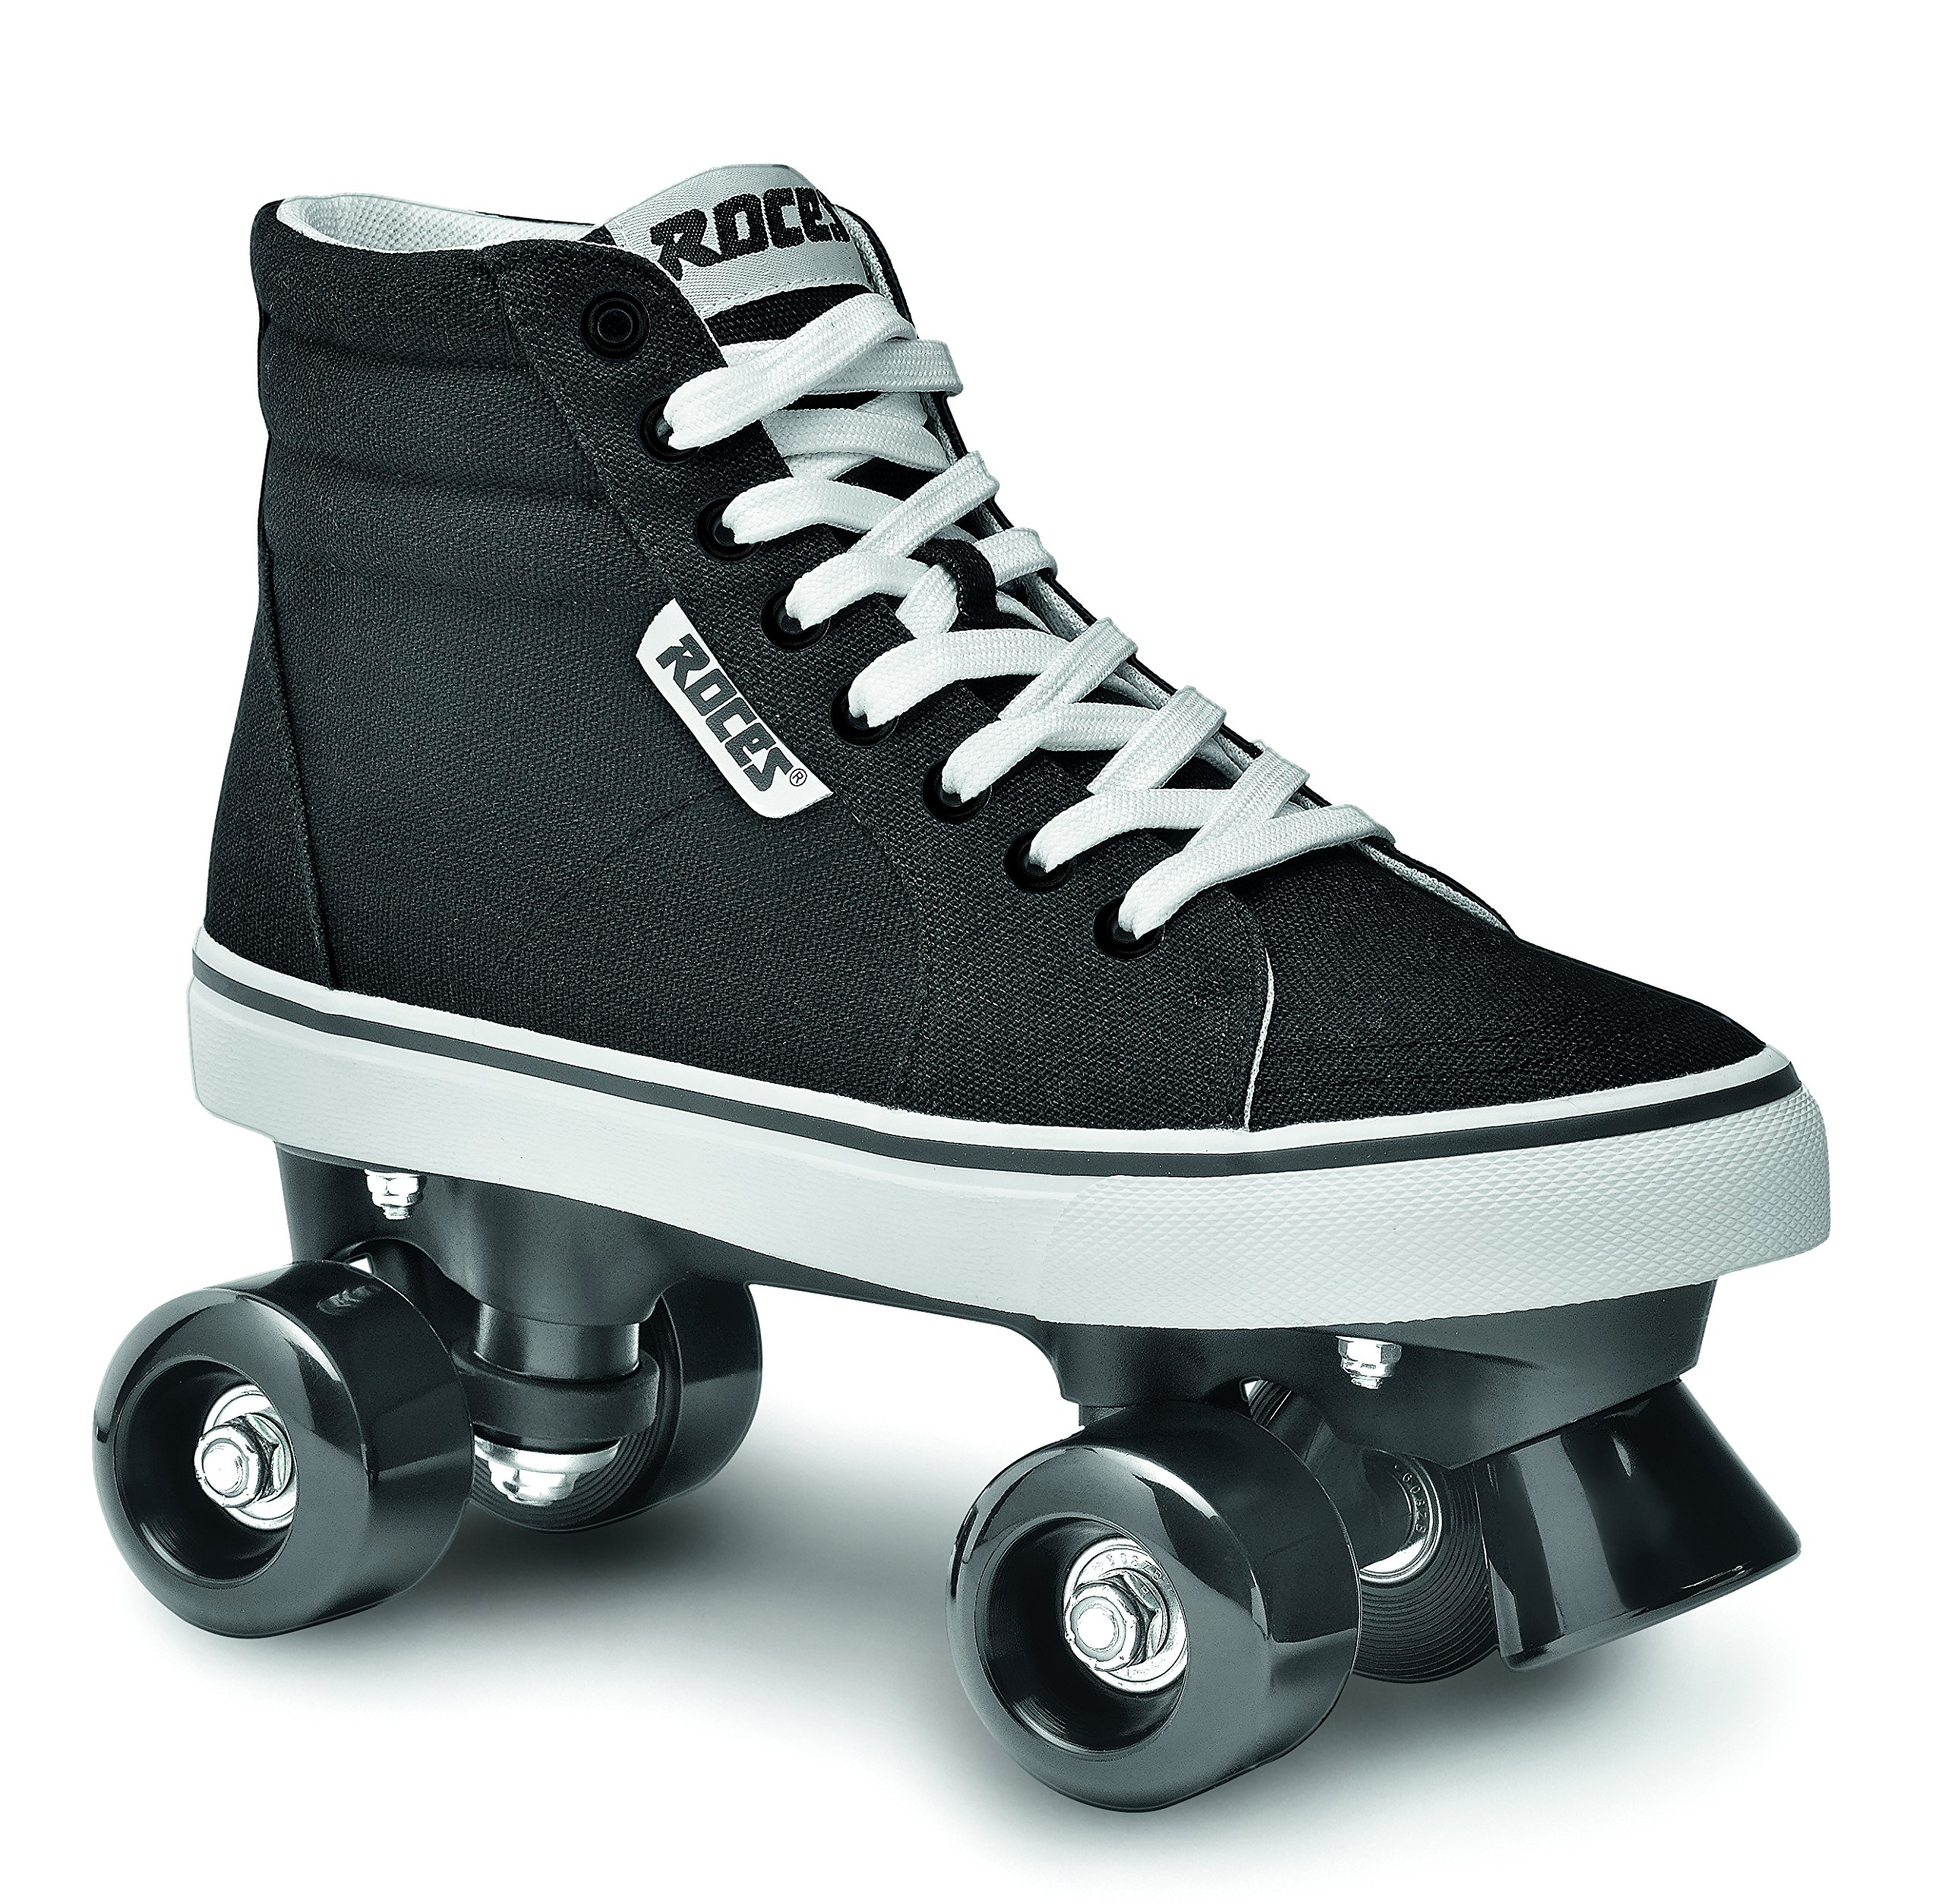 Roces 550030 Model Chuck Roller Skate,Black/White,9USW,7USM,40EU,6UK by Roces (Image #1)